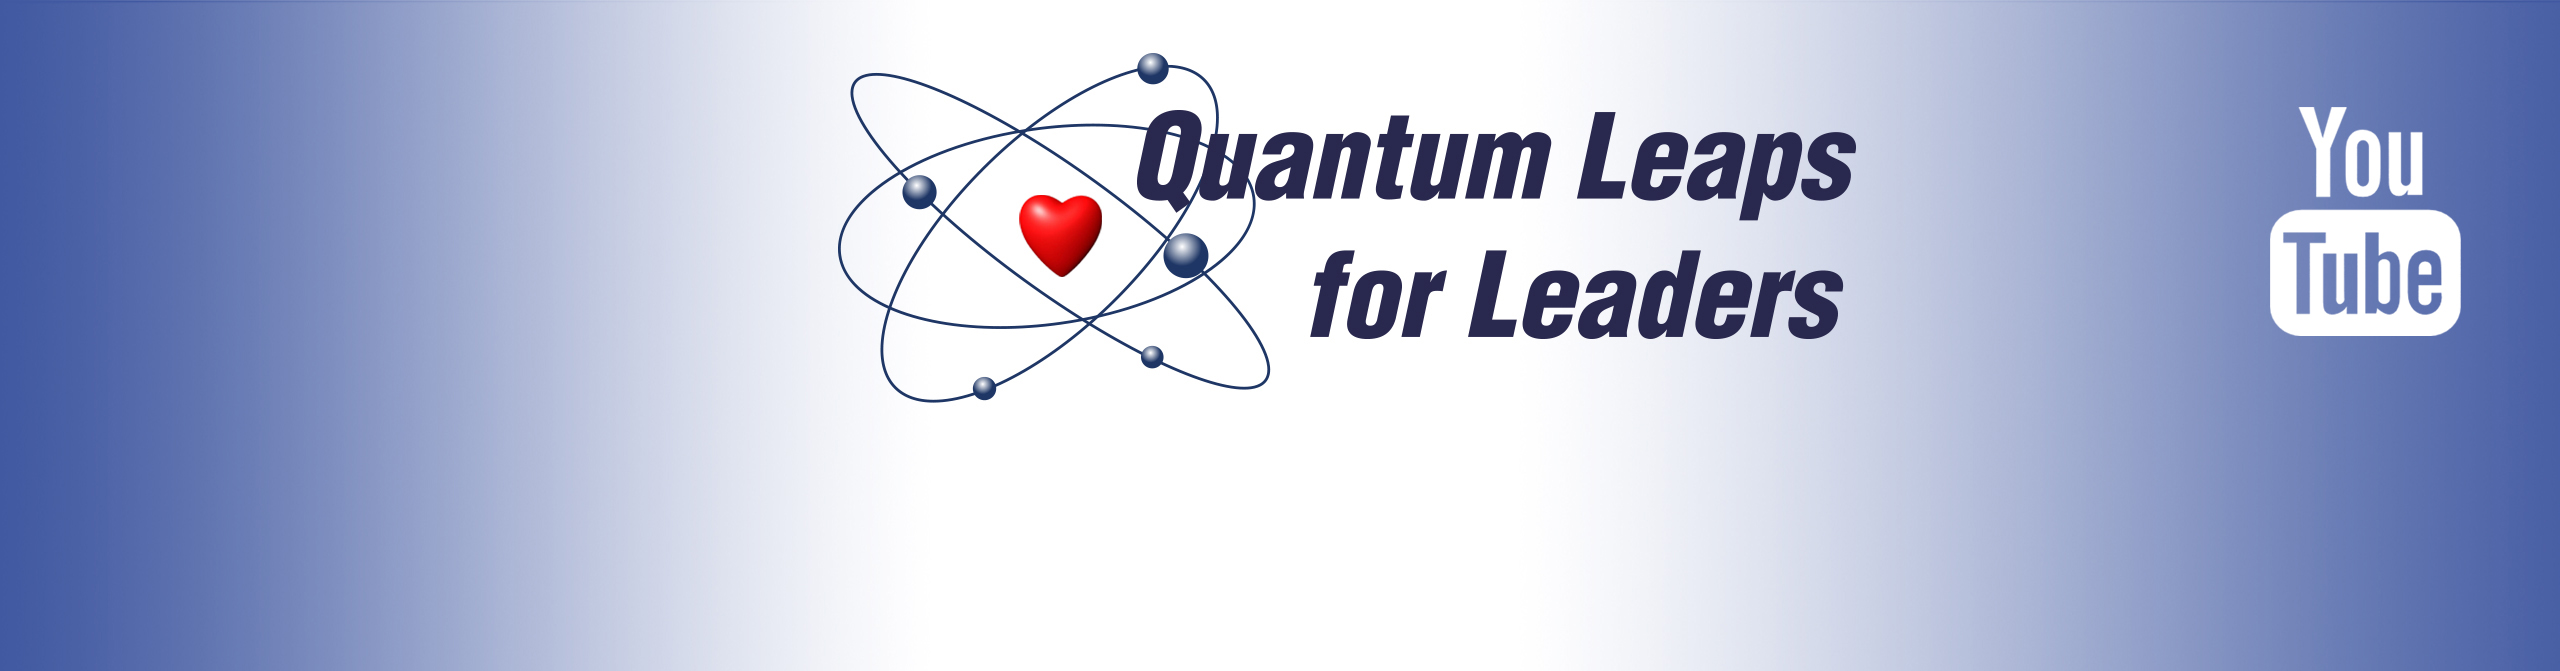 Contact Quantum Leaps For Leaders